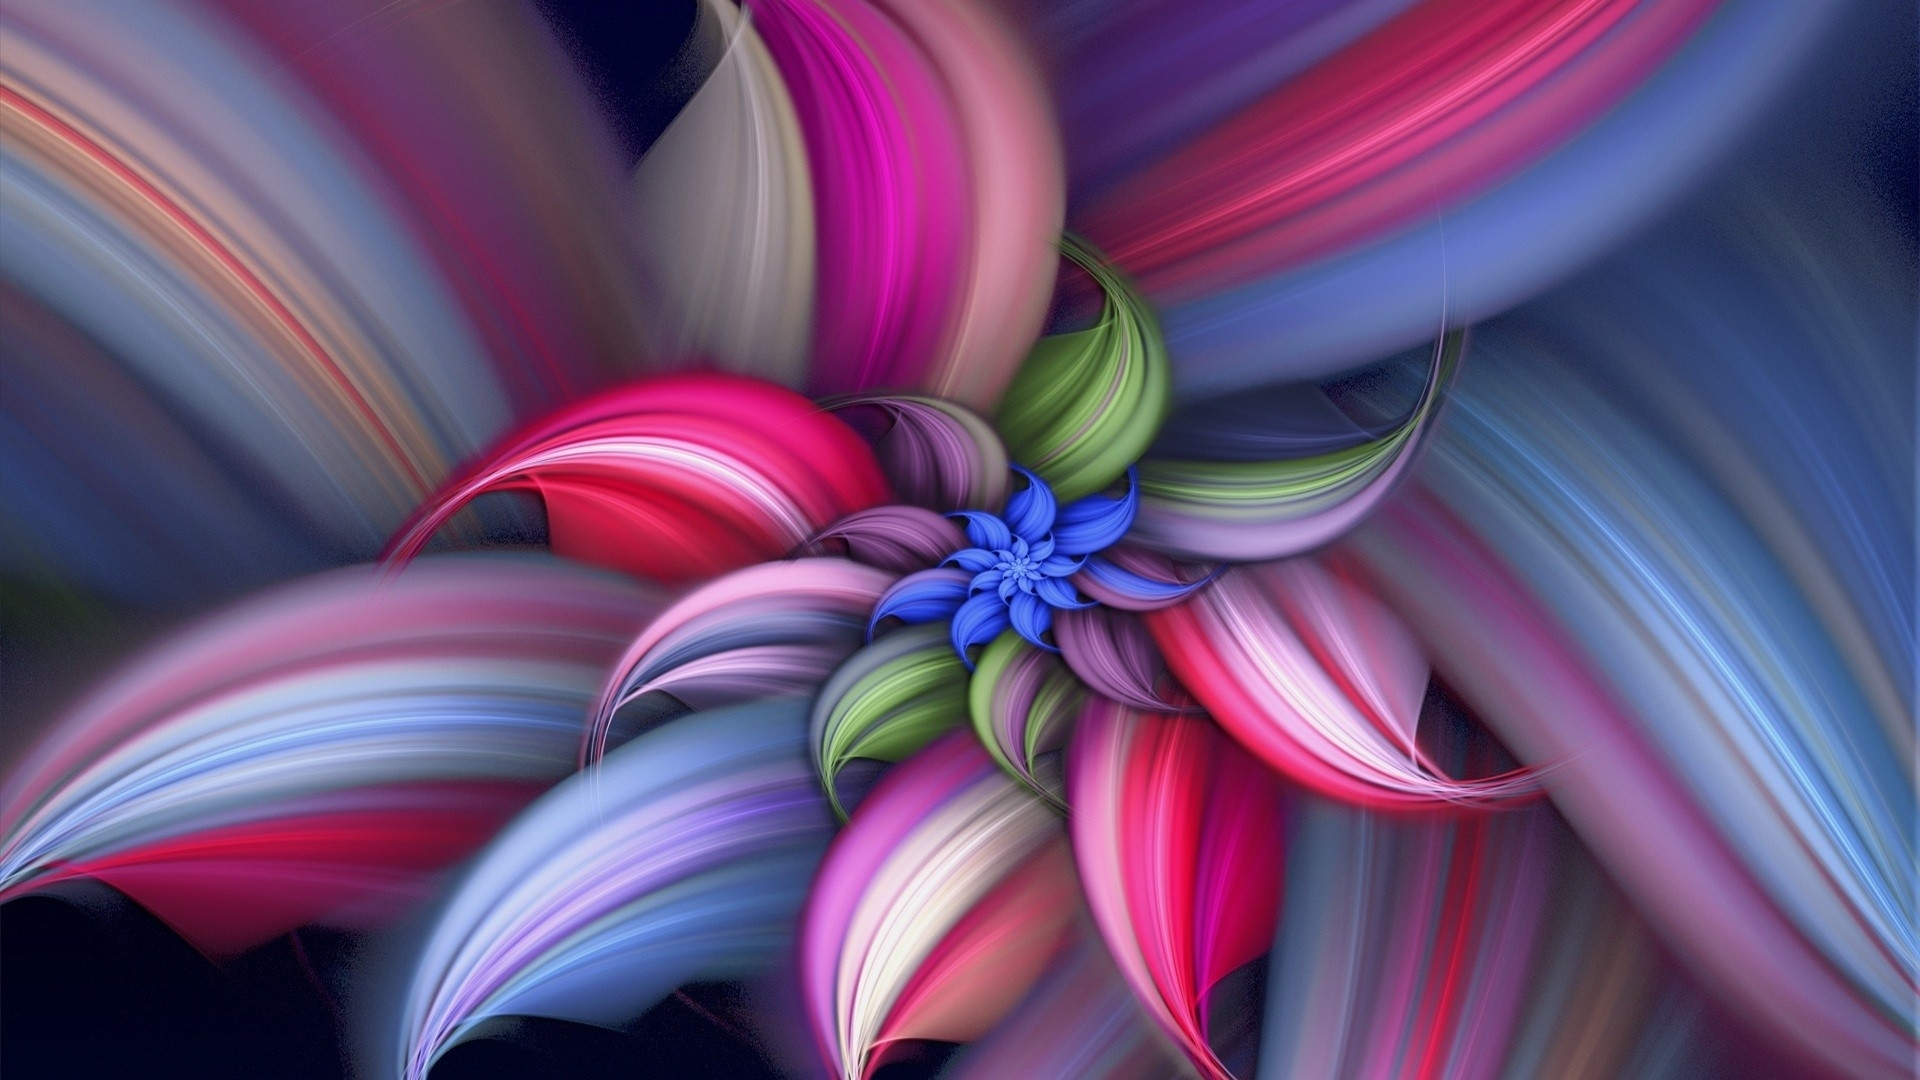 abstract flower free download